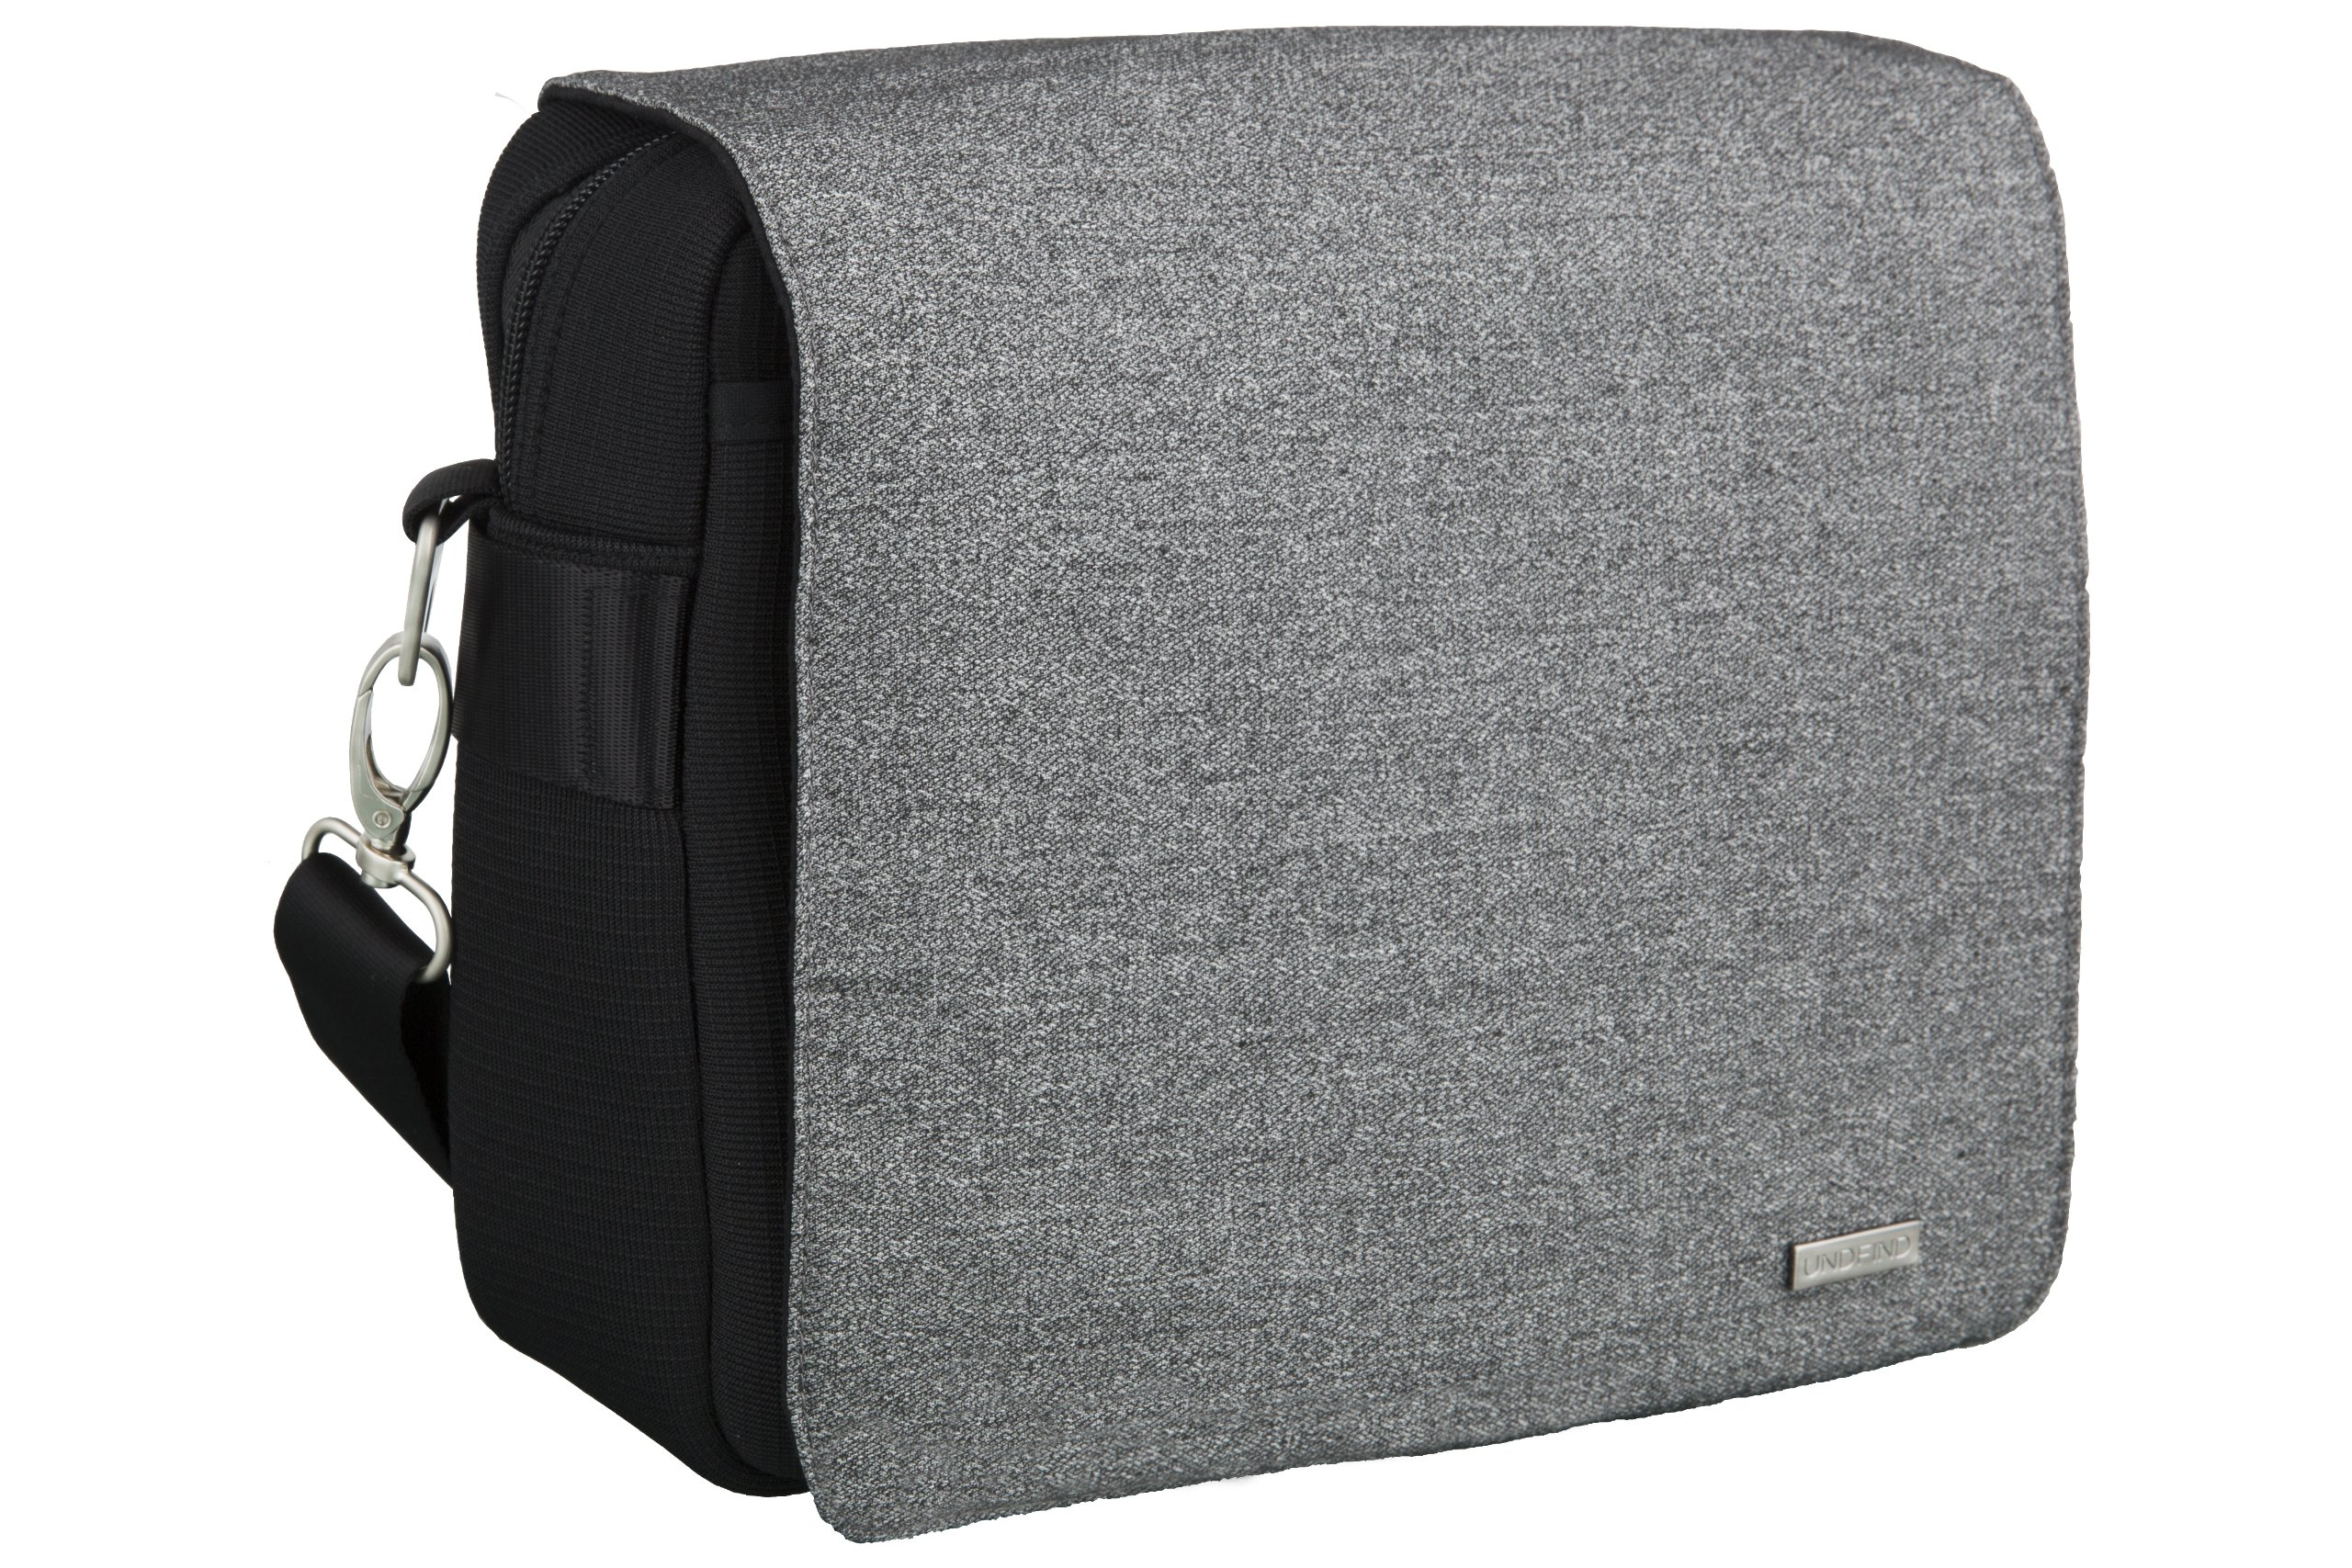 Undfind OB10-0009 One Bag 10-Inch Camera and Laptop Bag with Cover and Photo Insert (City Grey) by UNDFIND